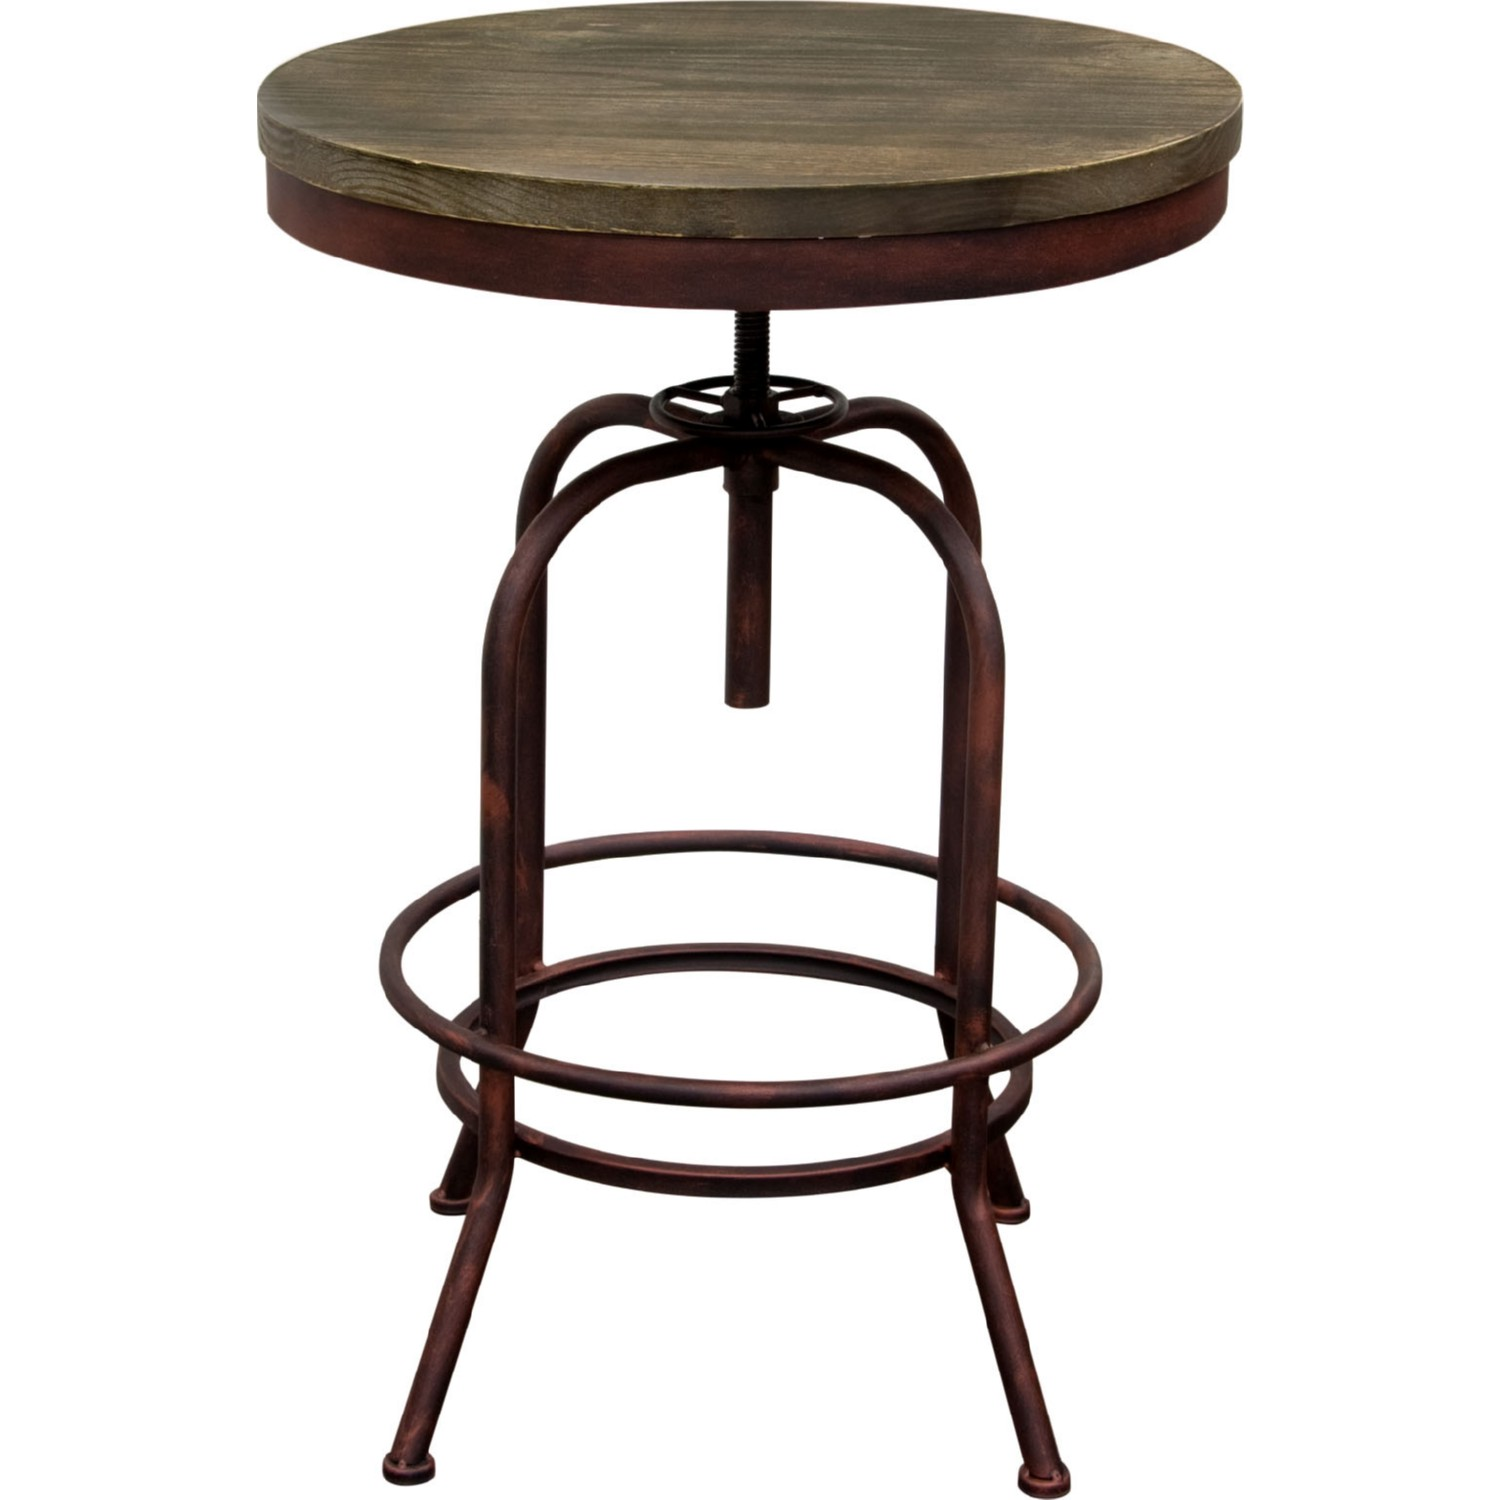 Enjoyable Fairfax Adjustable Height Bistro Table W Weathered Brown Top On Rust Black Iron Base By Diamond Sofa Alphanode Cool Chair Designs And Ideas Alphanodeonline